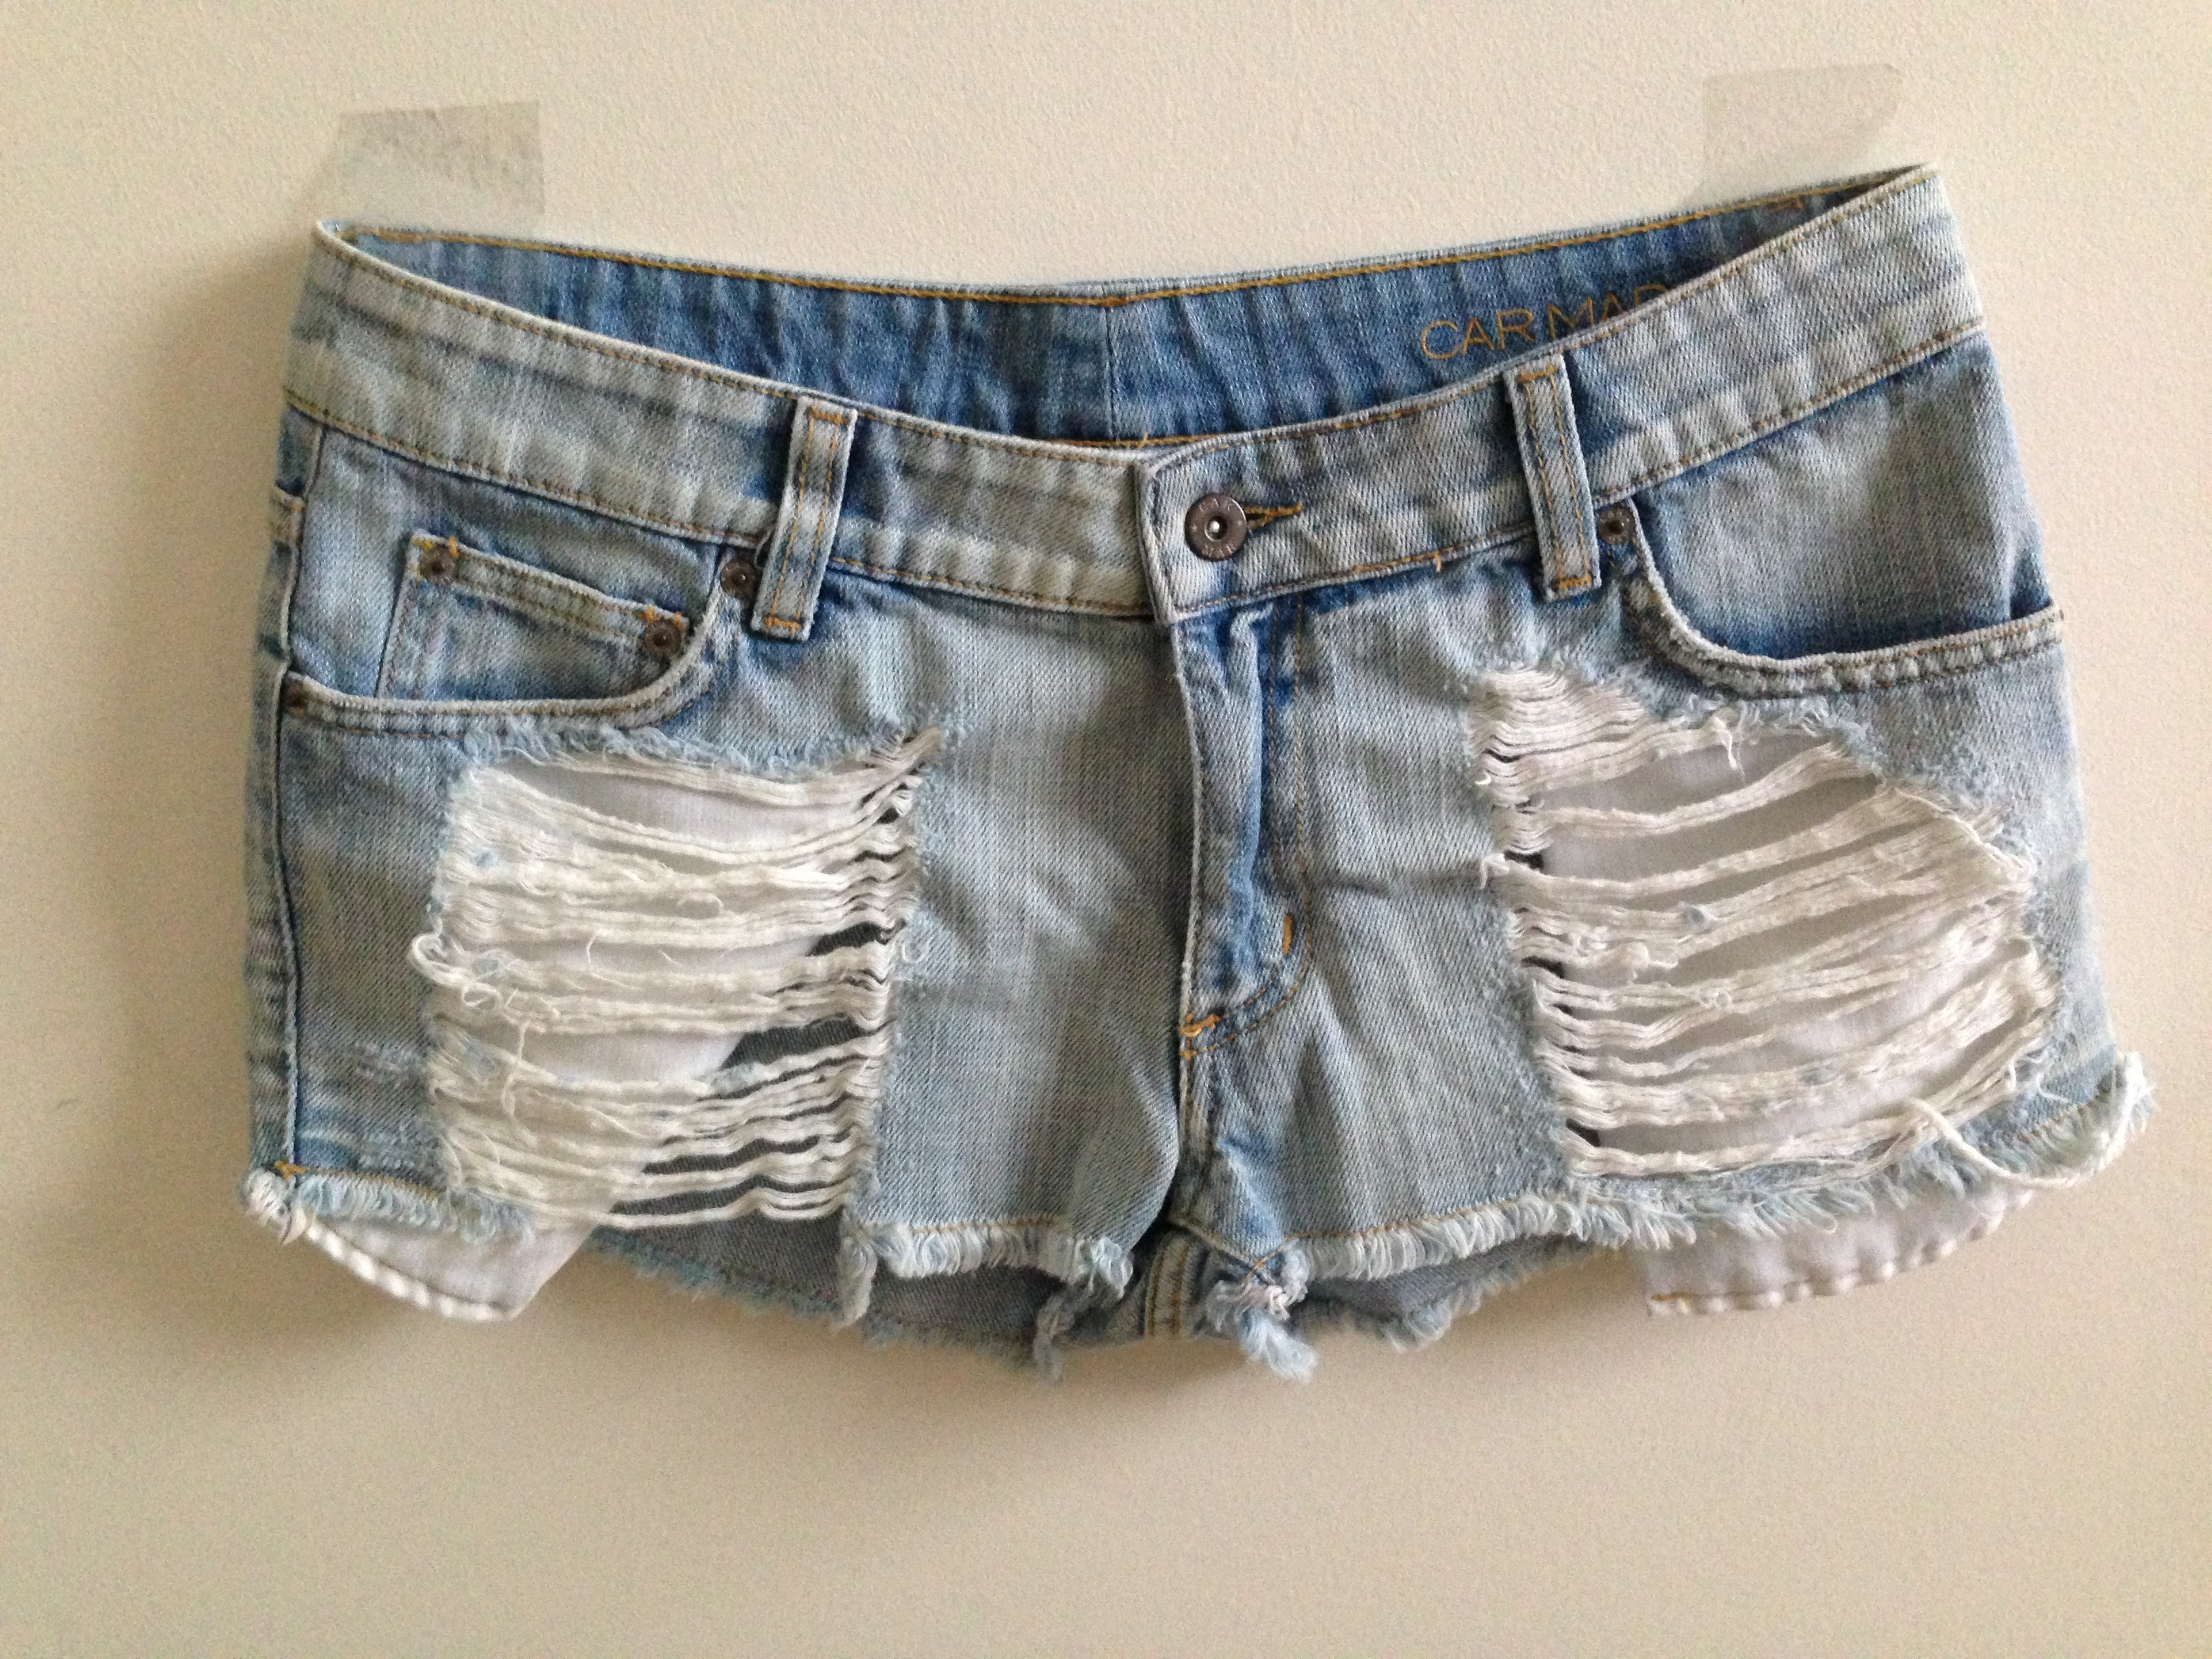 LF slashered denim short shorts from Snazzy Chic Boutique on Storenvy